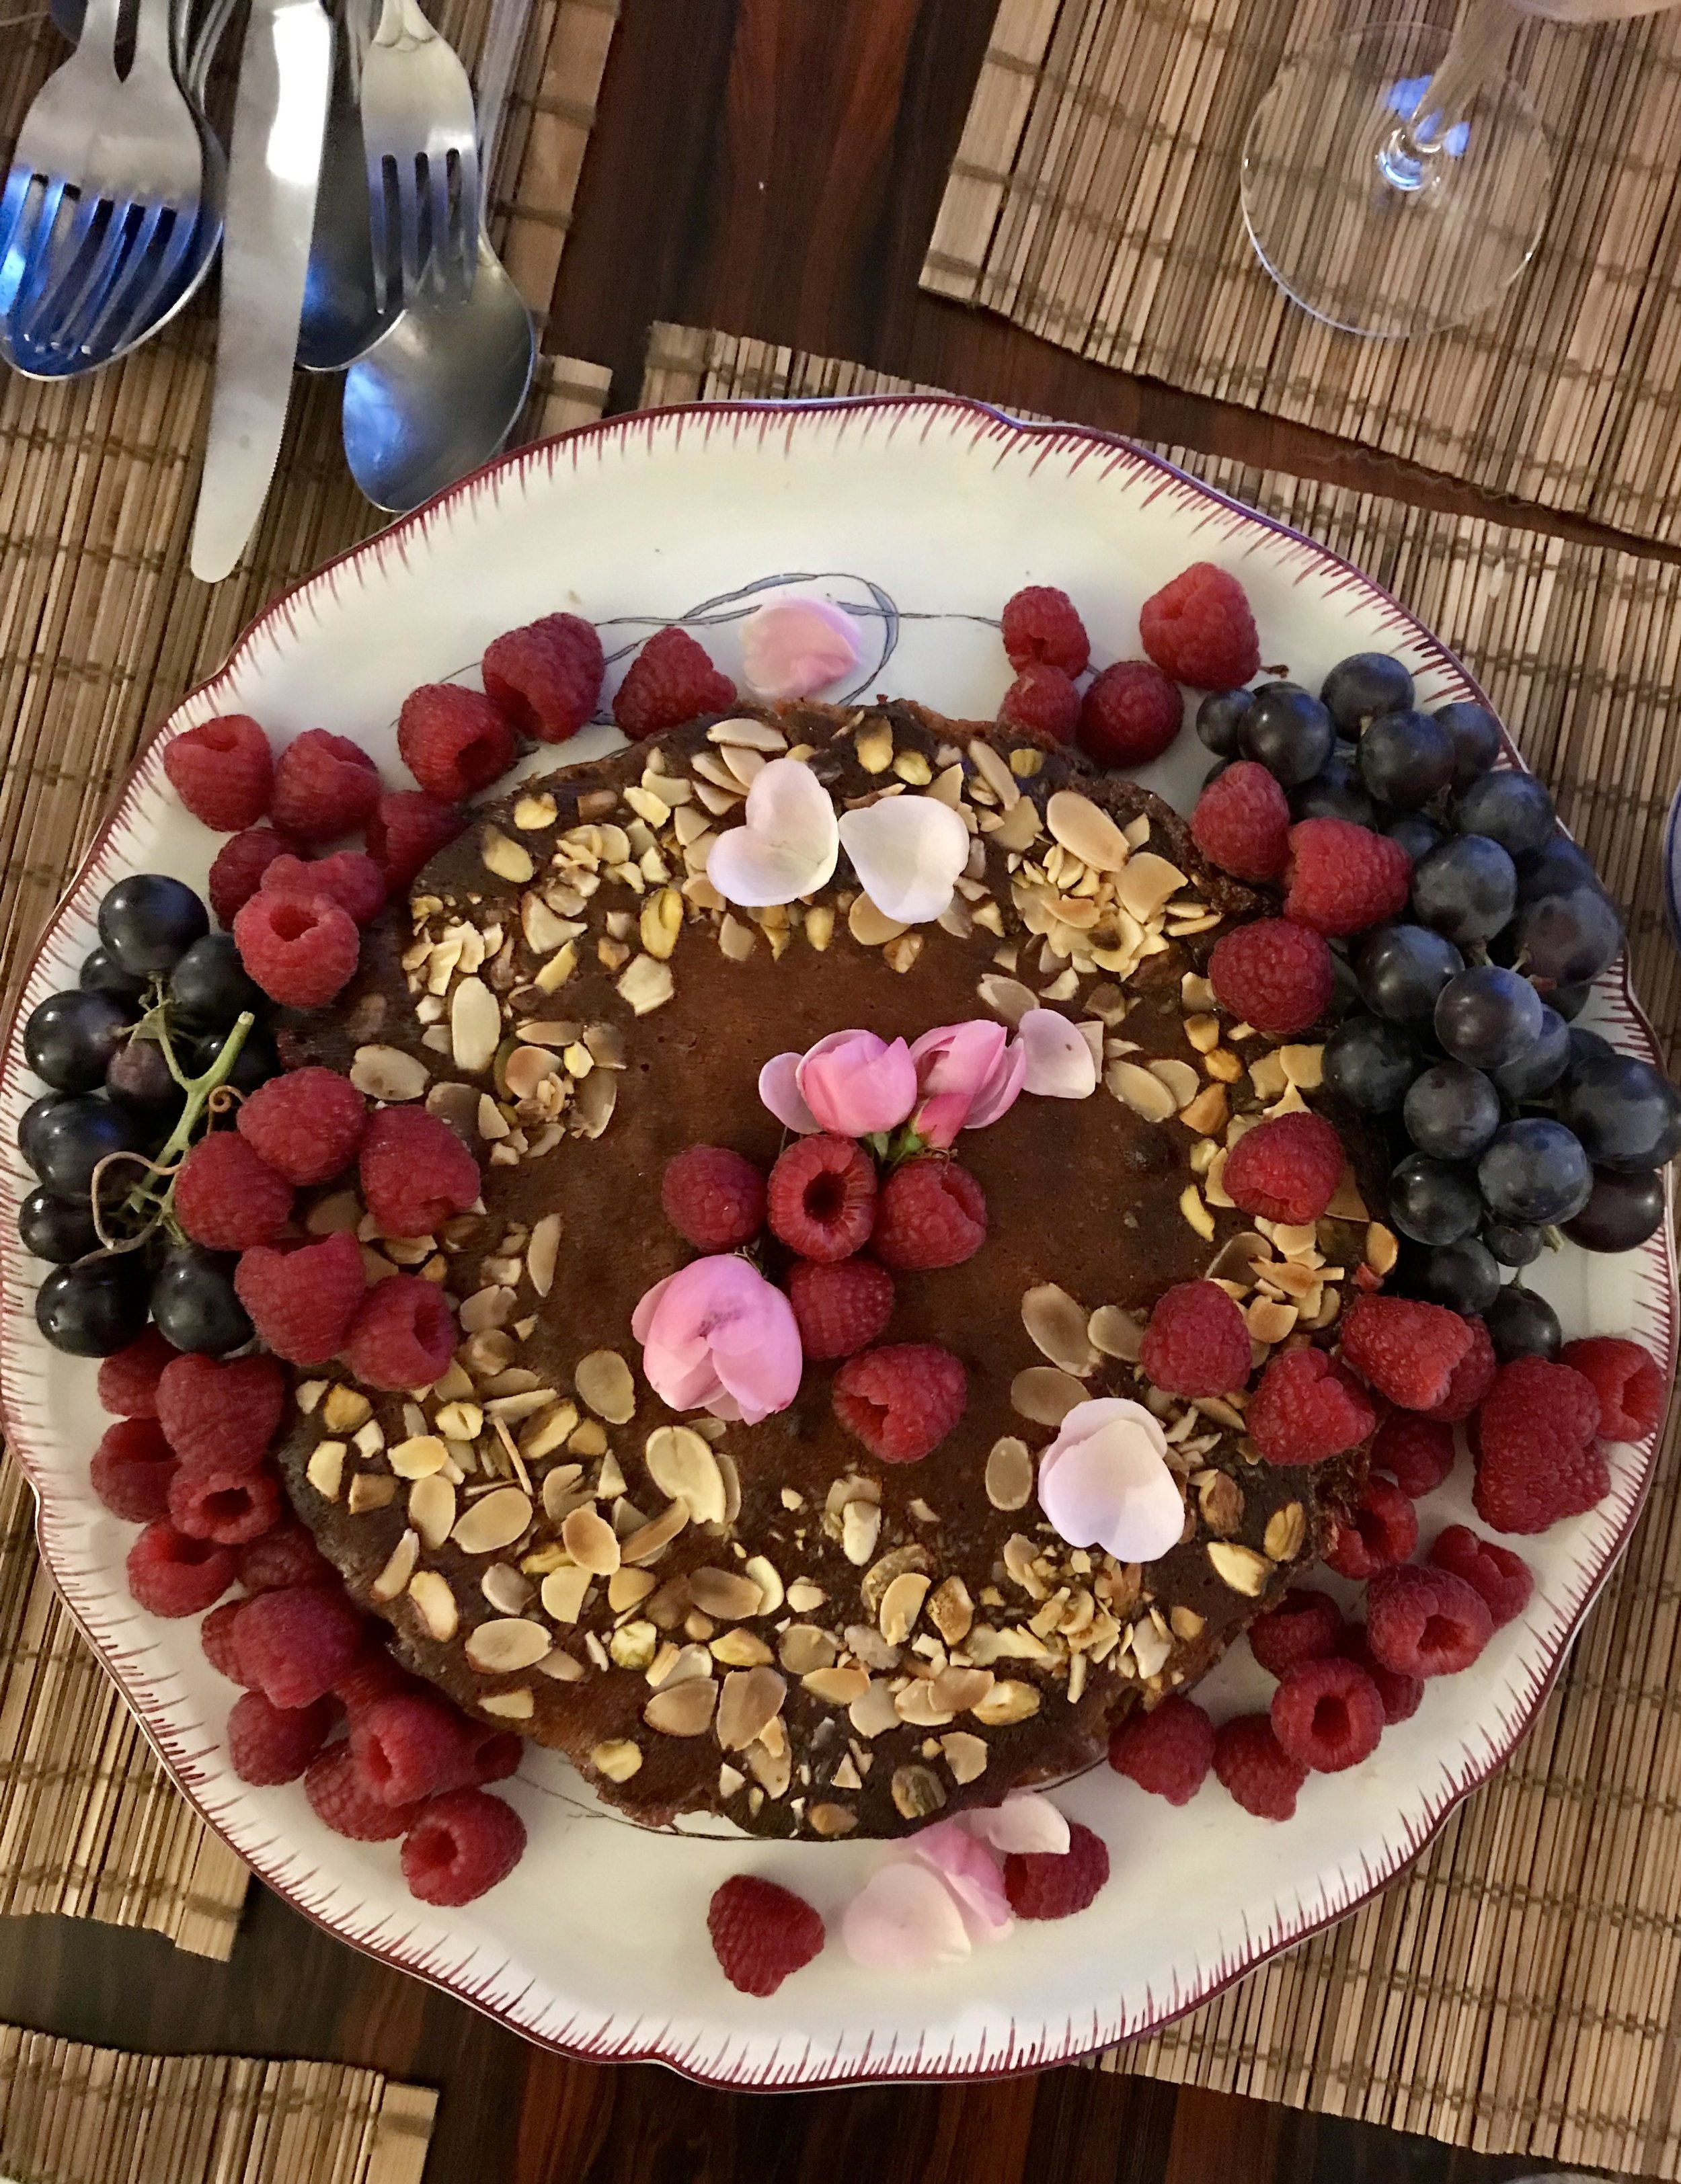 Serve with berries and rose petals for WOW!